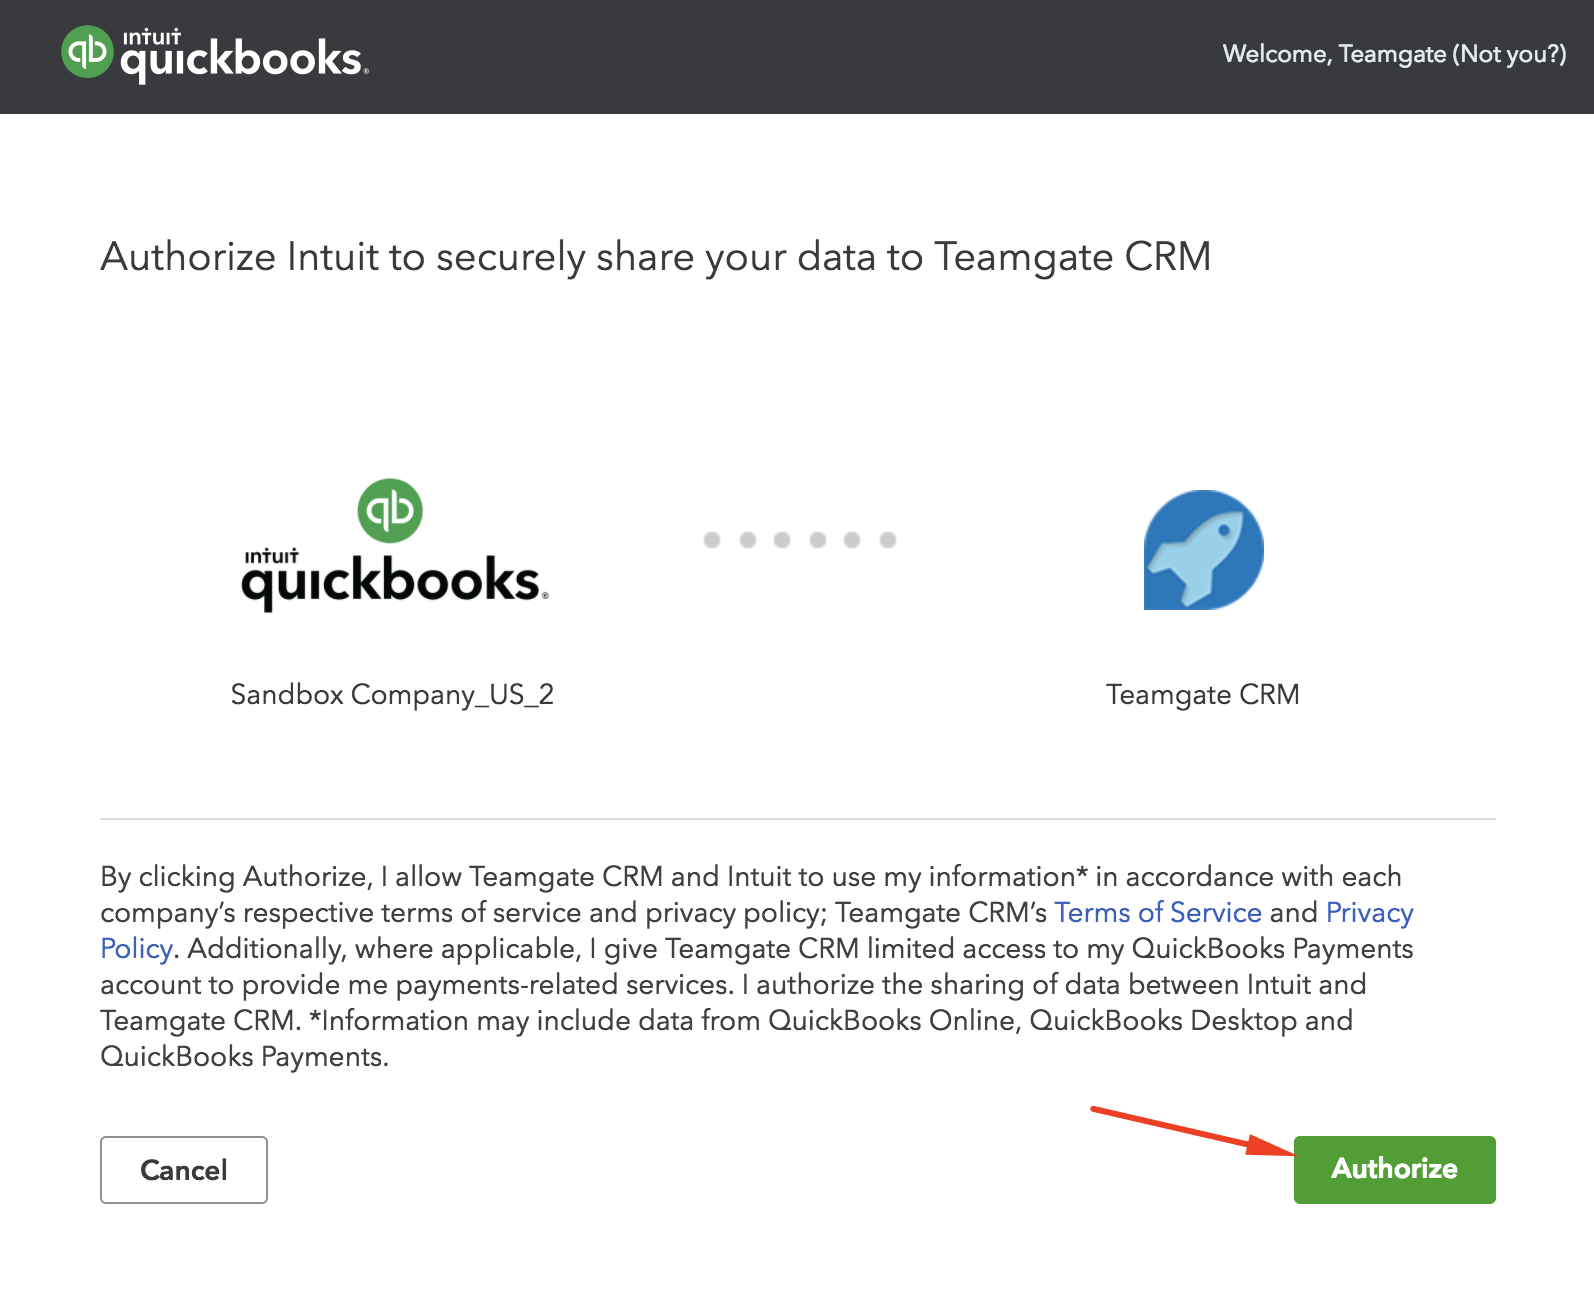 authorize-QuickBooks-Teamgate-integration.png